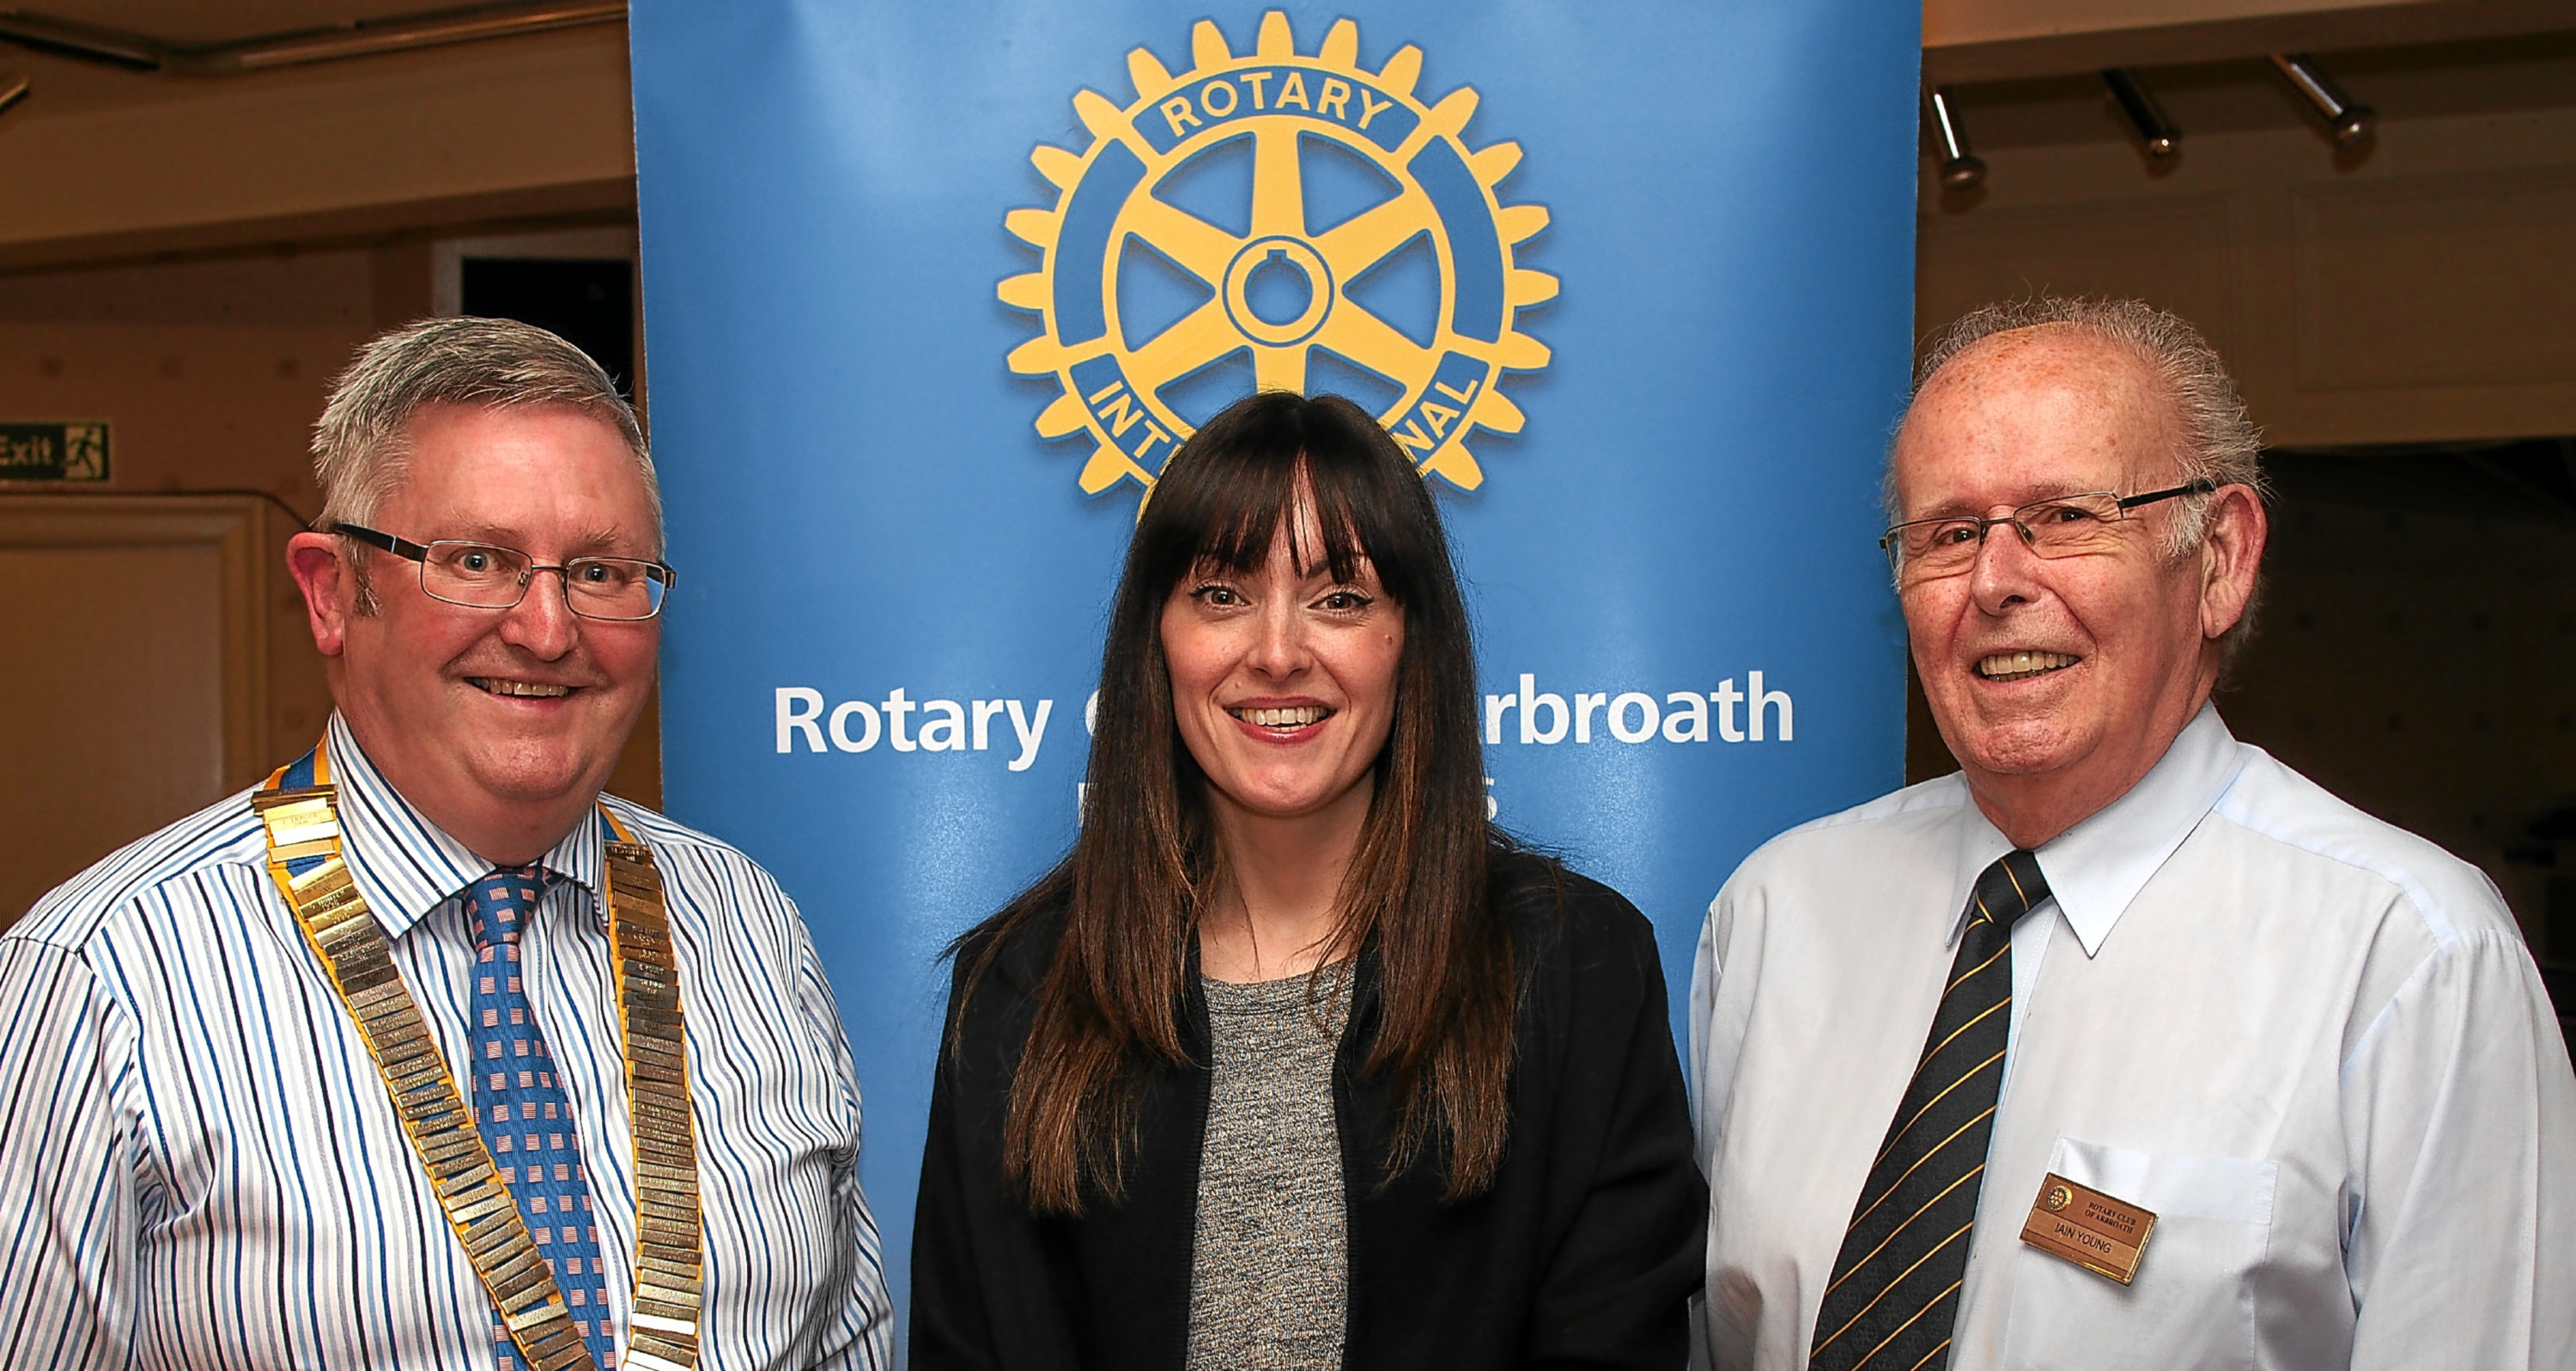 Rotary members David Miller and Iain Young with (middle) Sam Edmond, V&A development manager